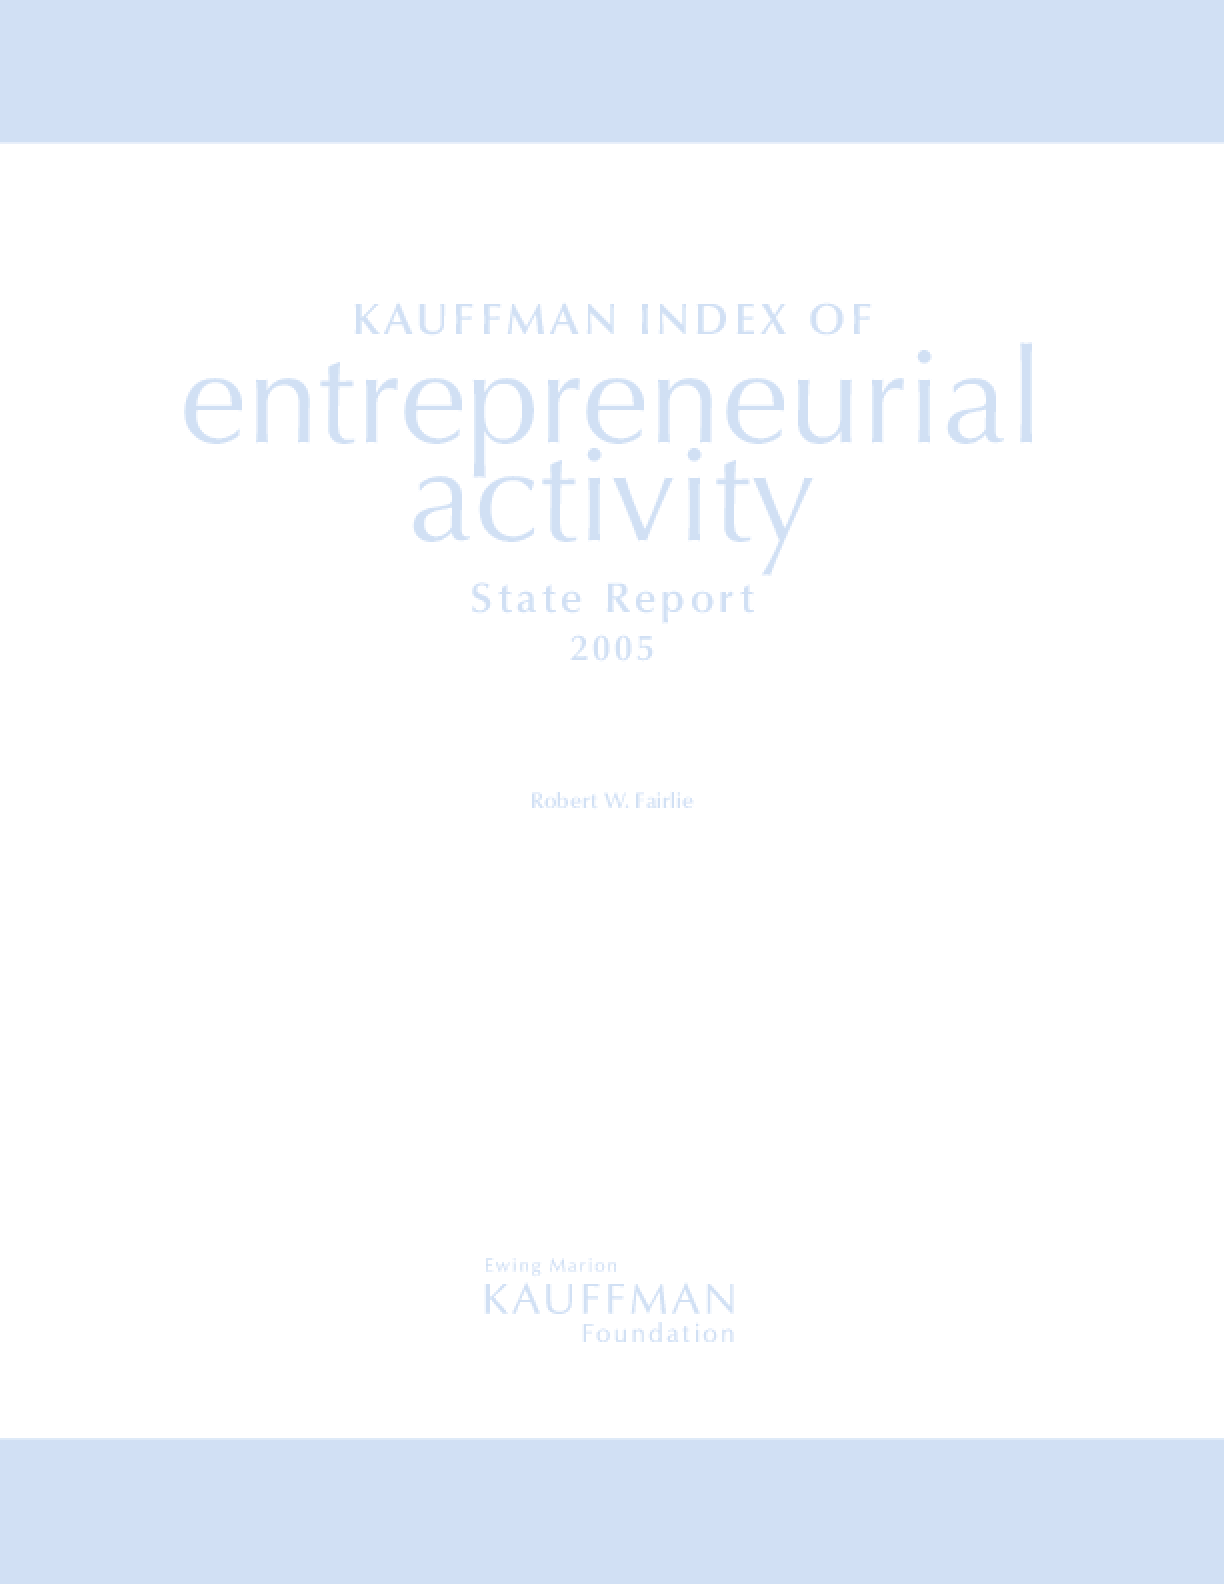 Kauffman Index of Entrepreneurial Activity: State Report 2005